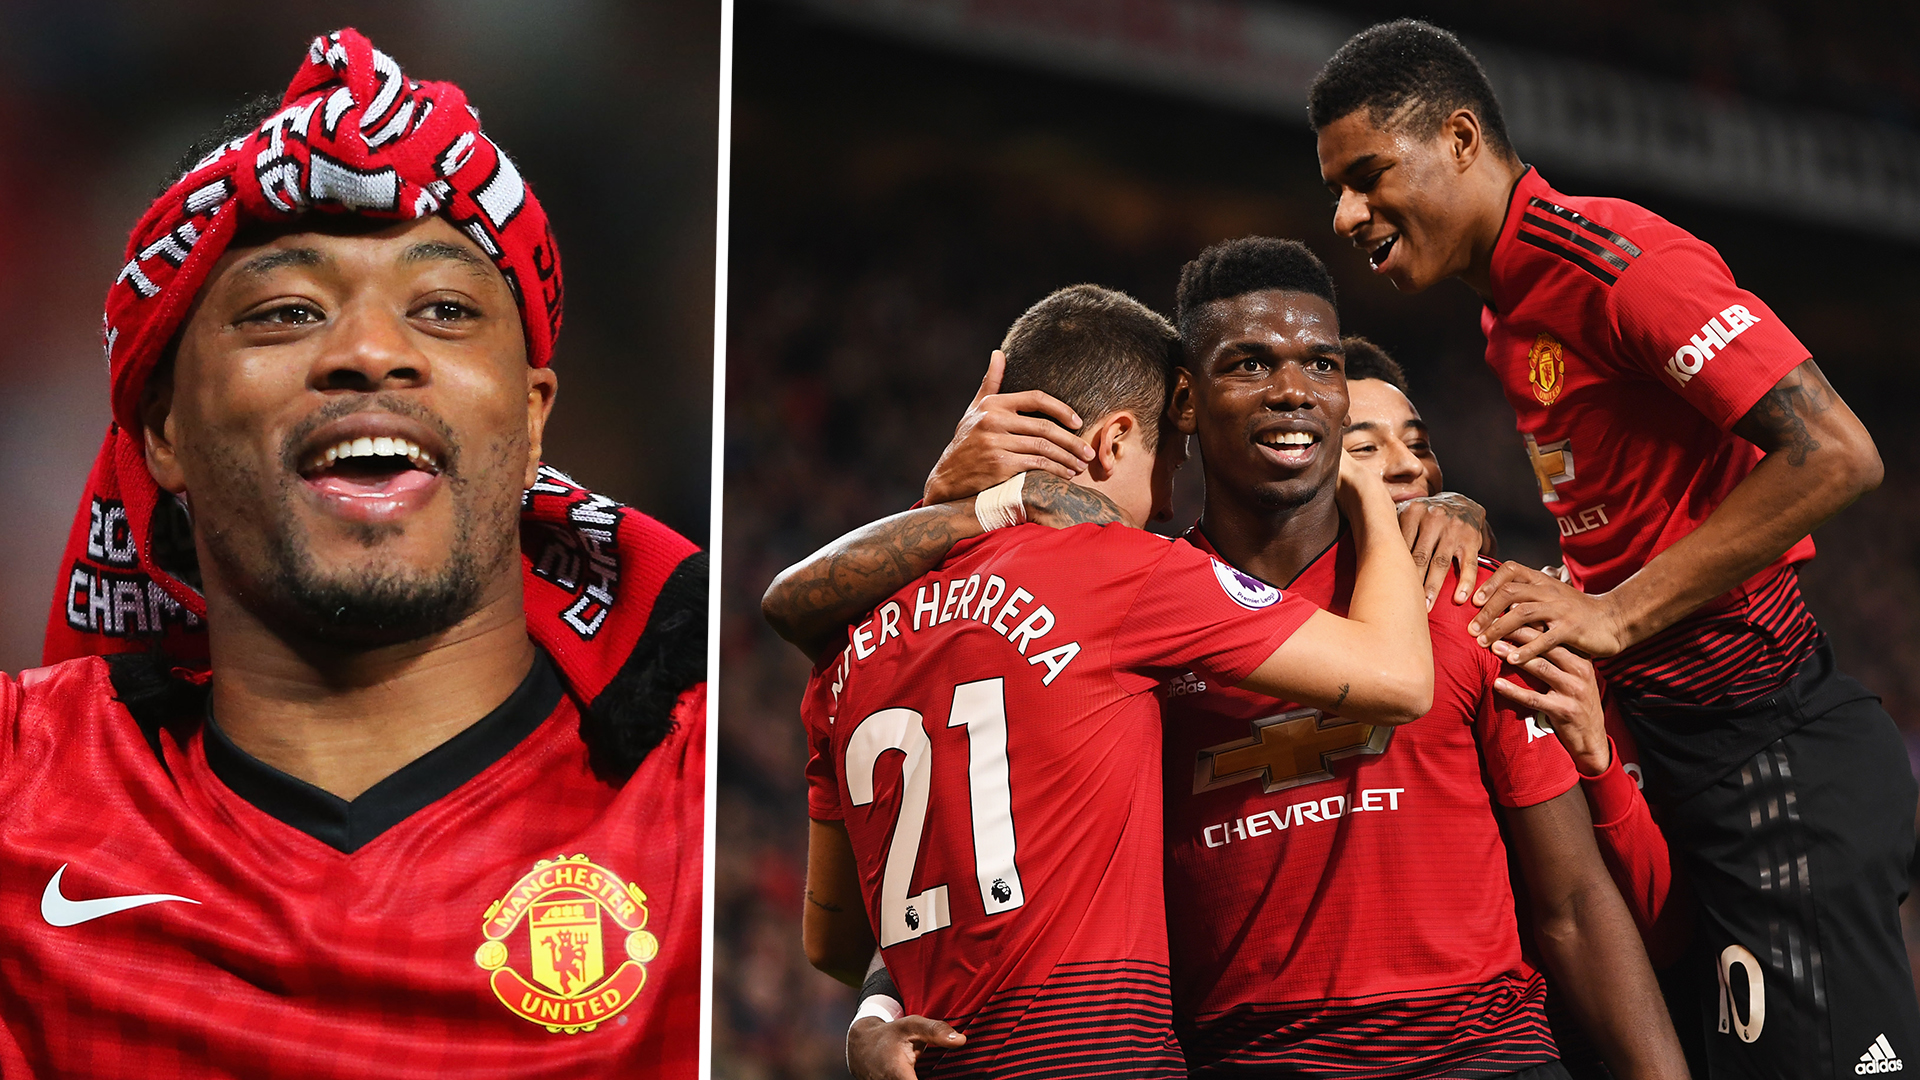 Man United Vs PSG: Fans React To English Club Mauling